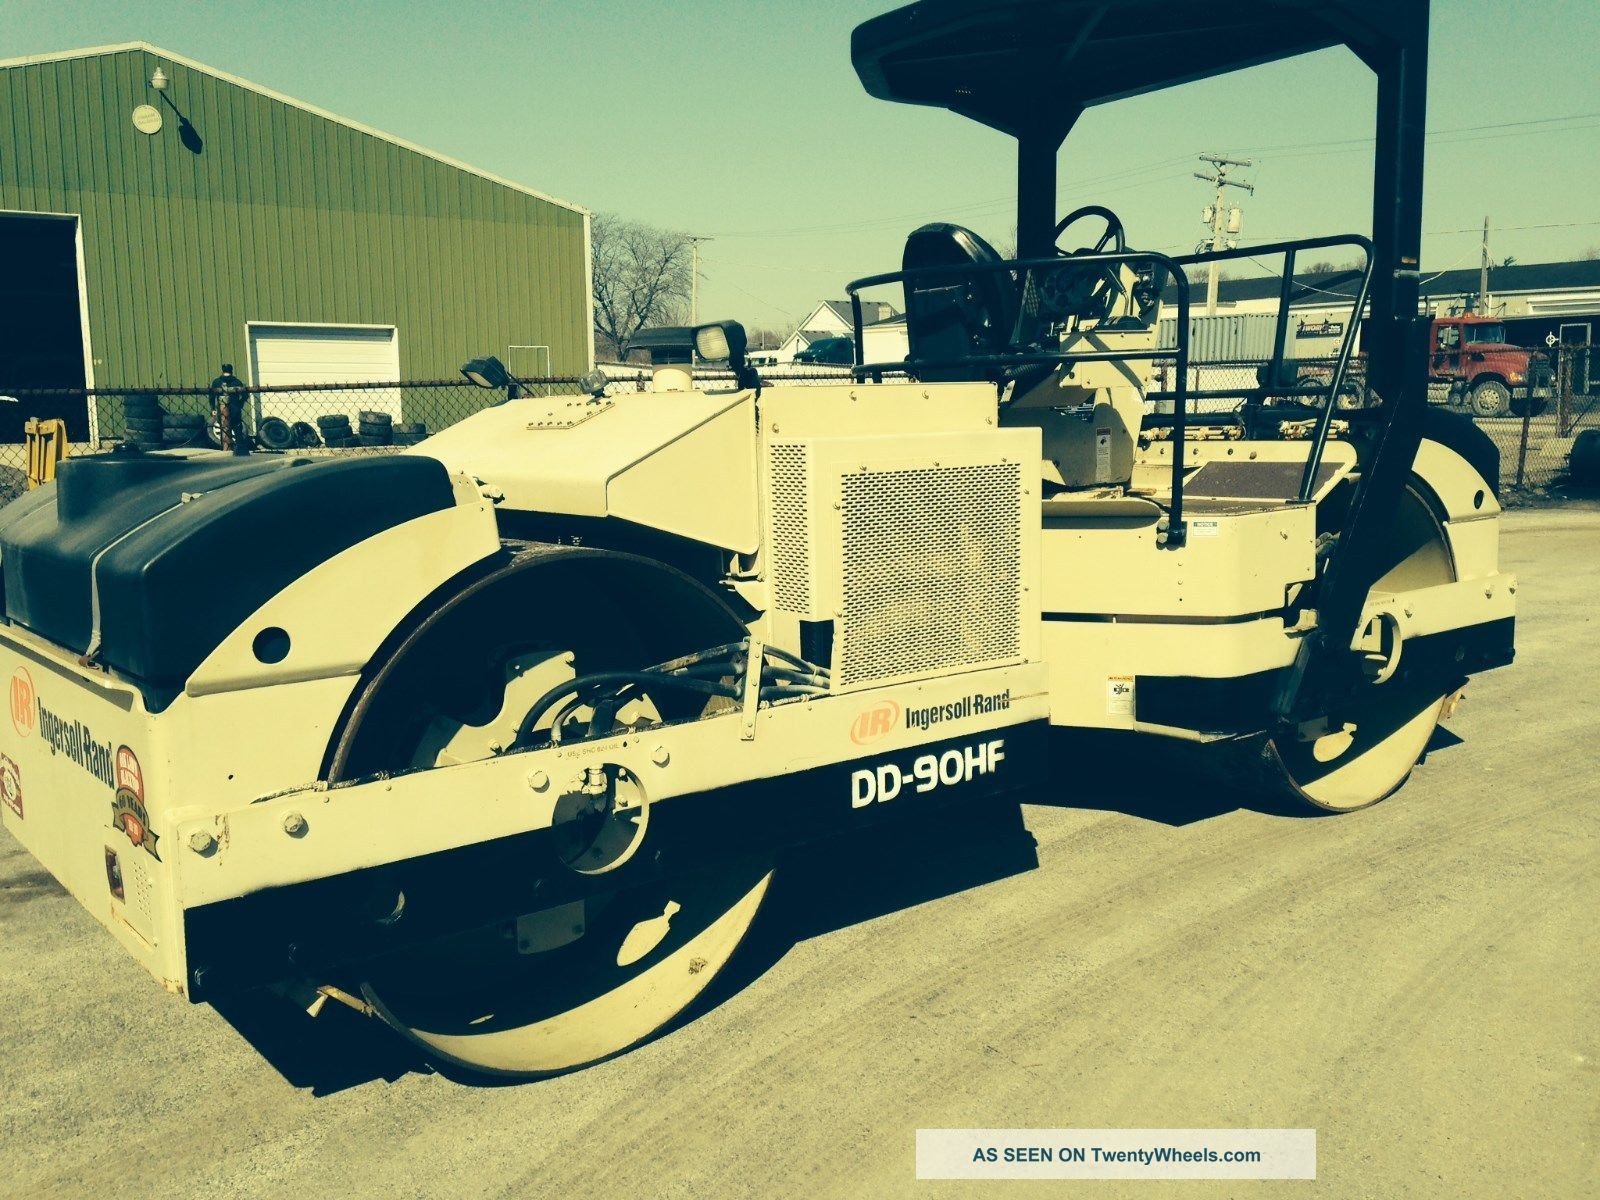 Asphalt Roller Ingersoll Rand Dd 90hf Owner Other photo